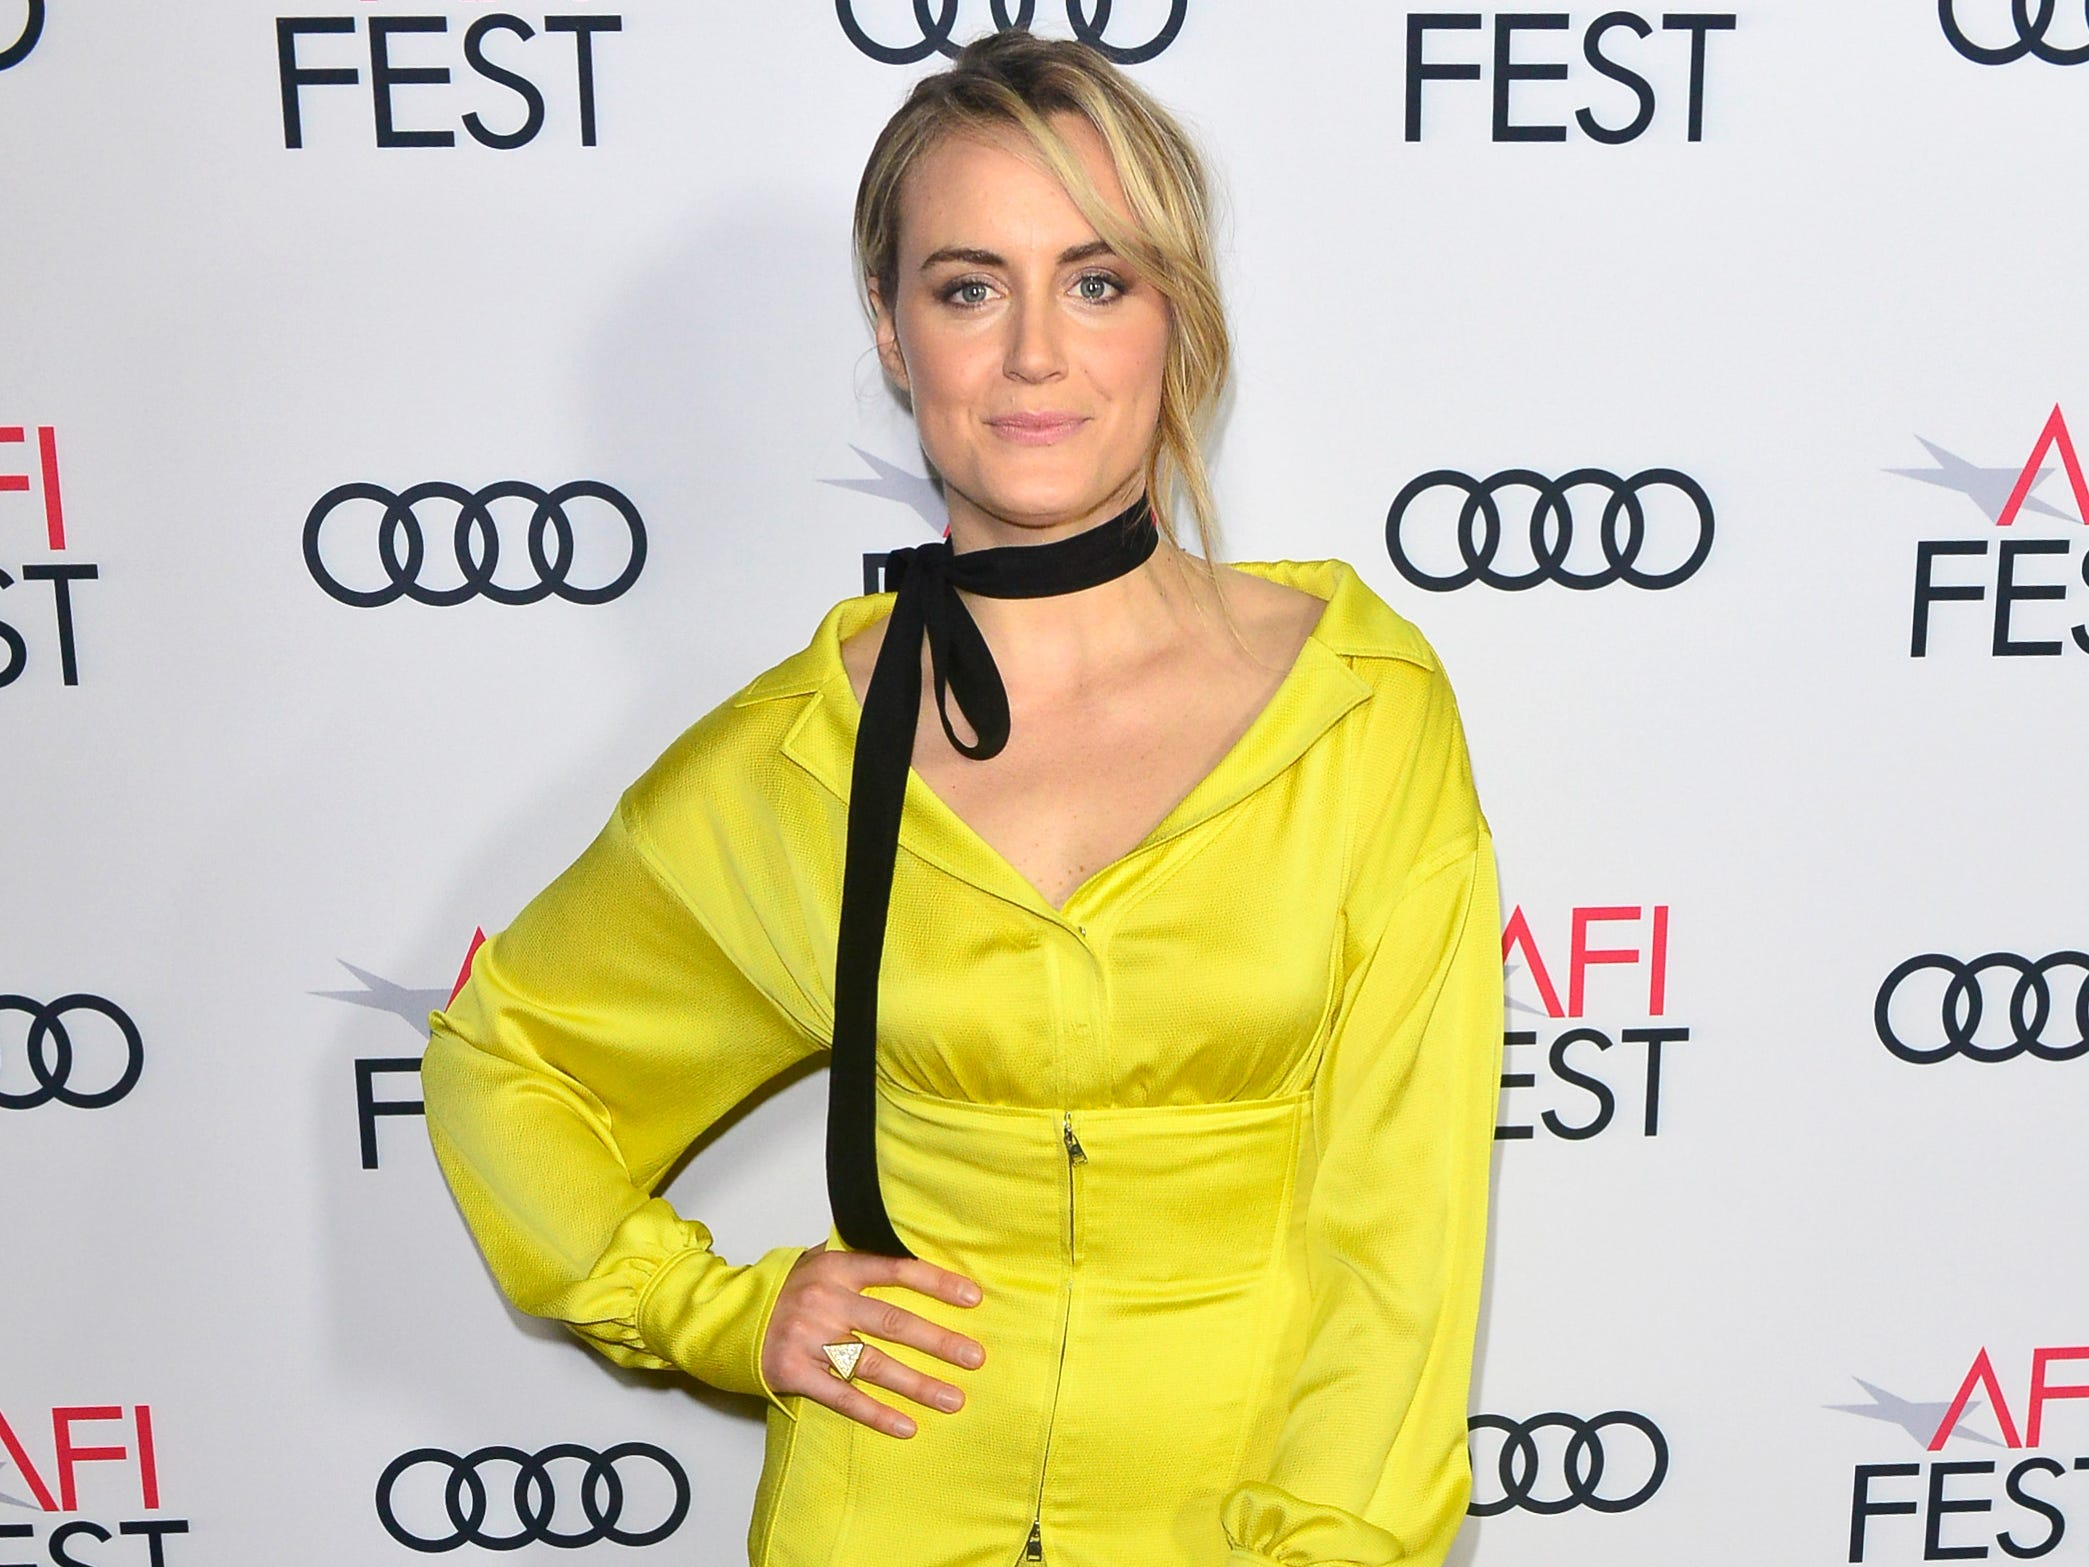 HOLLYWOOD, CA - NOVEMBER 10:  Taylor Schilling attends Festival Filmmakers #3 at AFI FEST 2018 Presented By Audi at TCL Chinese 6 Theatres on November 10, 2018 in Hollywood, California.  (Photo by Jerod Harris/Getty Images for AFI) ORG XMIT: 775252139 ORIG FILE ID: 1060098180